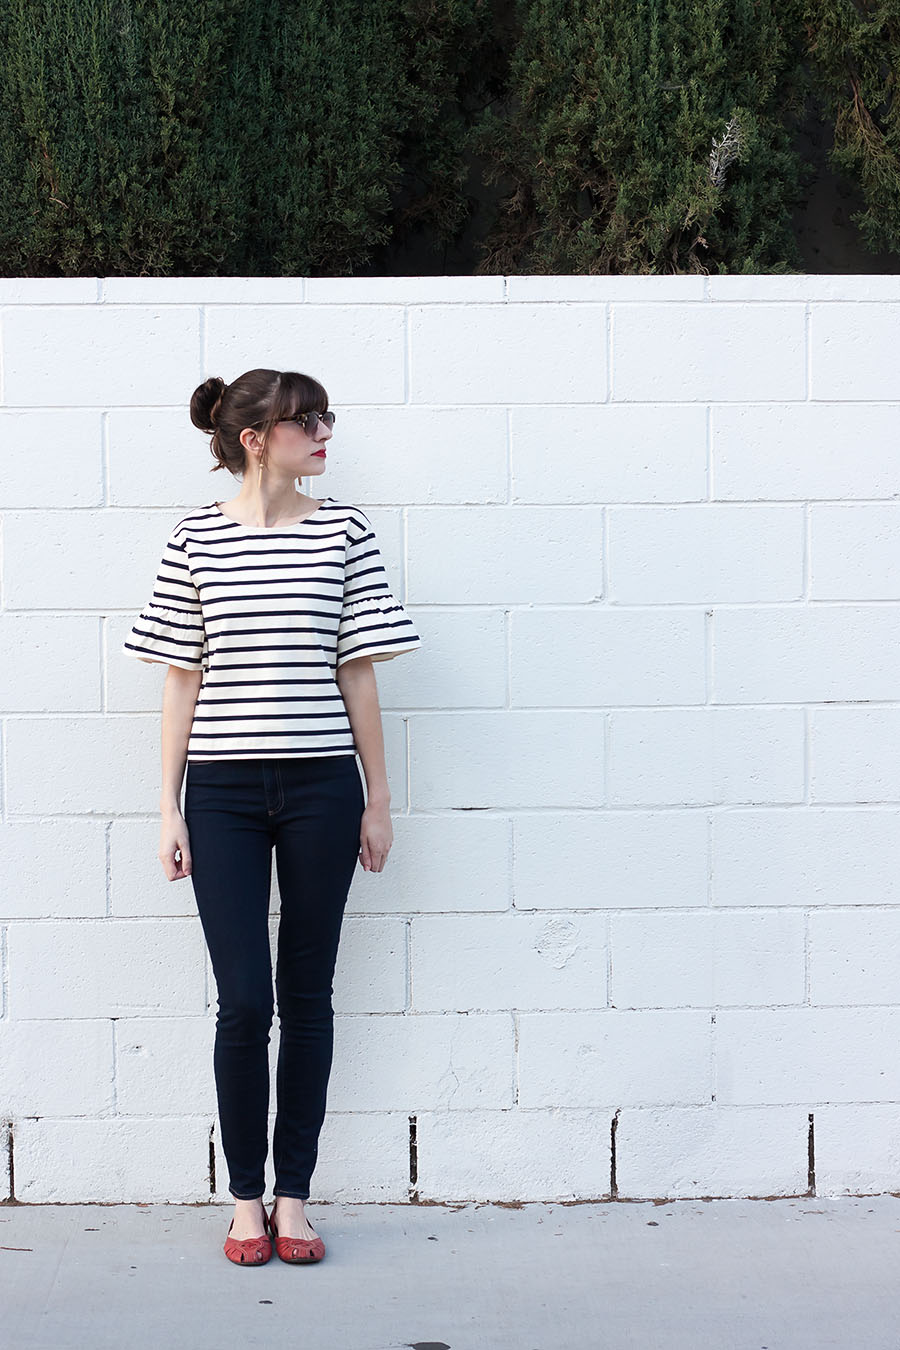 J.Crew Striped Top, High Rise Skinny Jeans